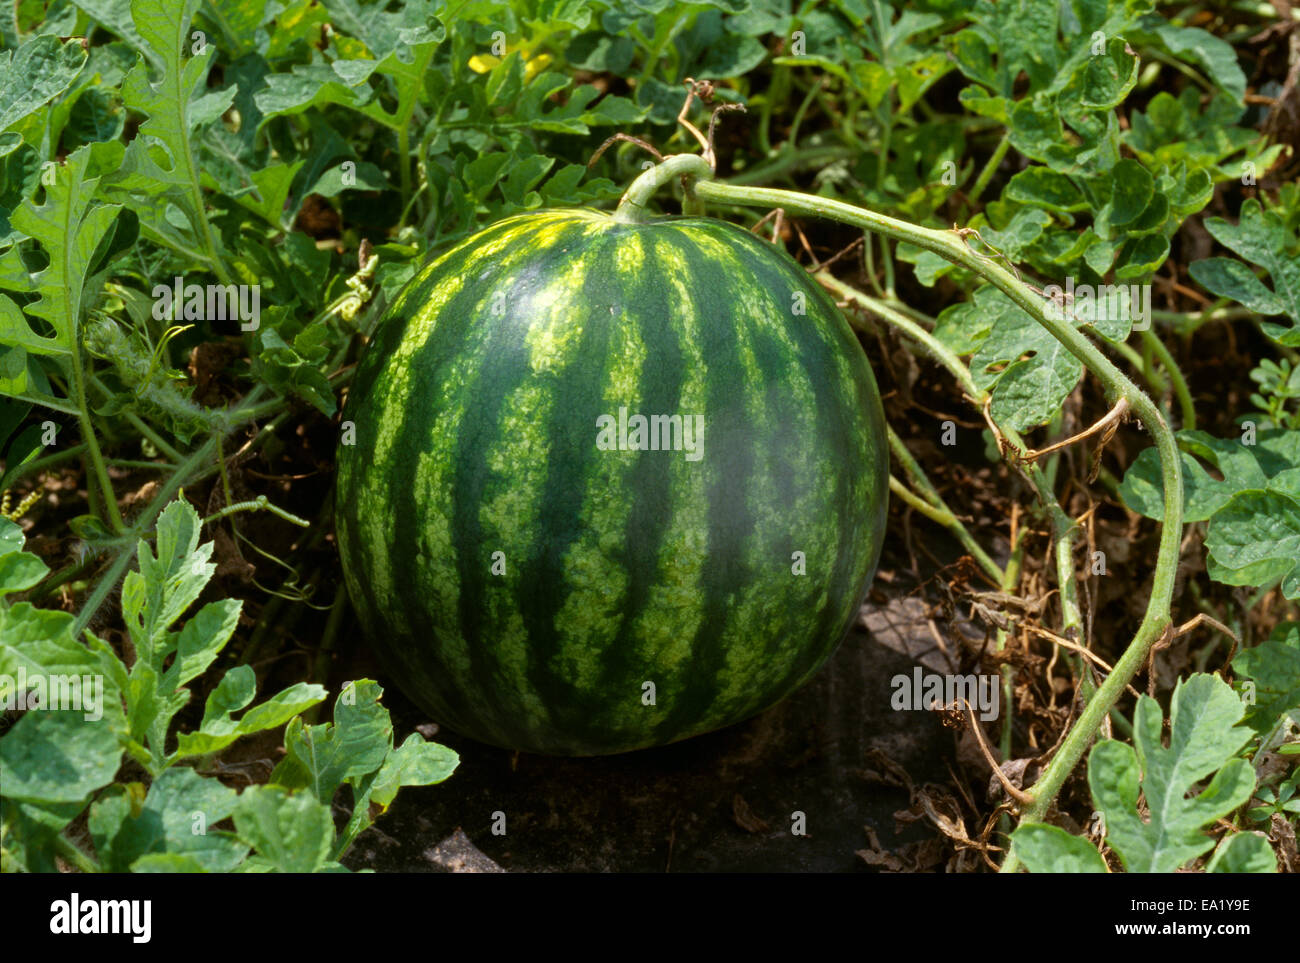 How Long Does It Take A Watermelon To Mature